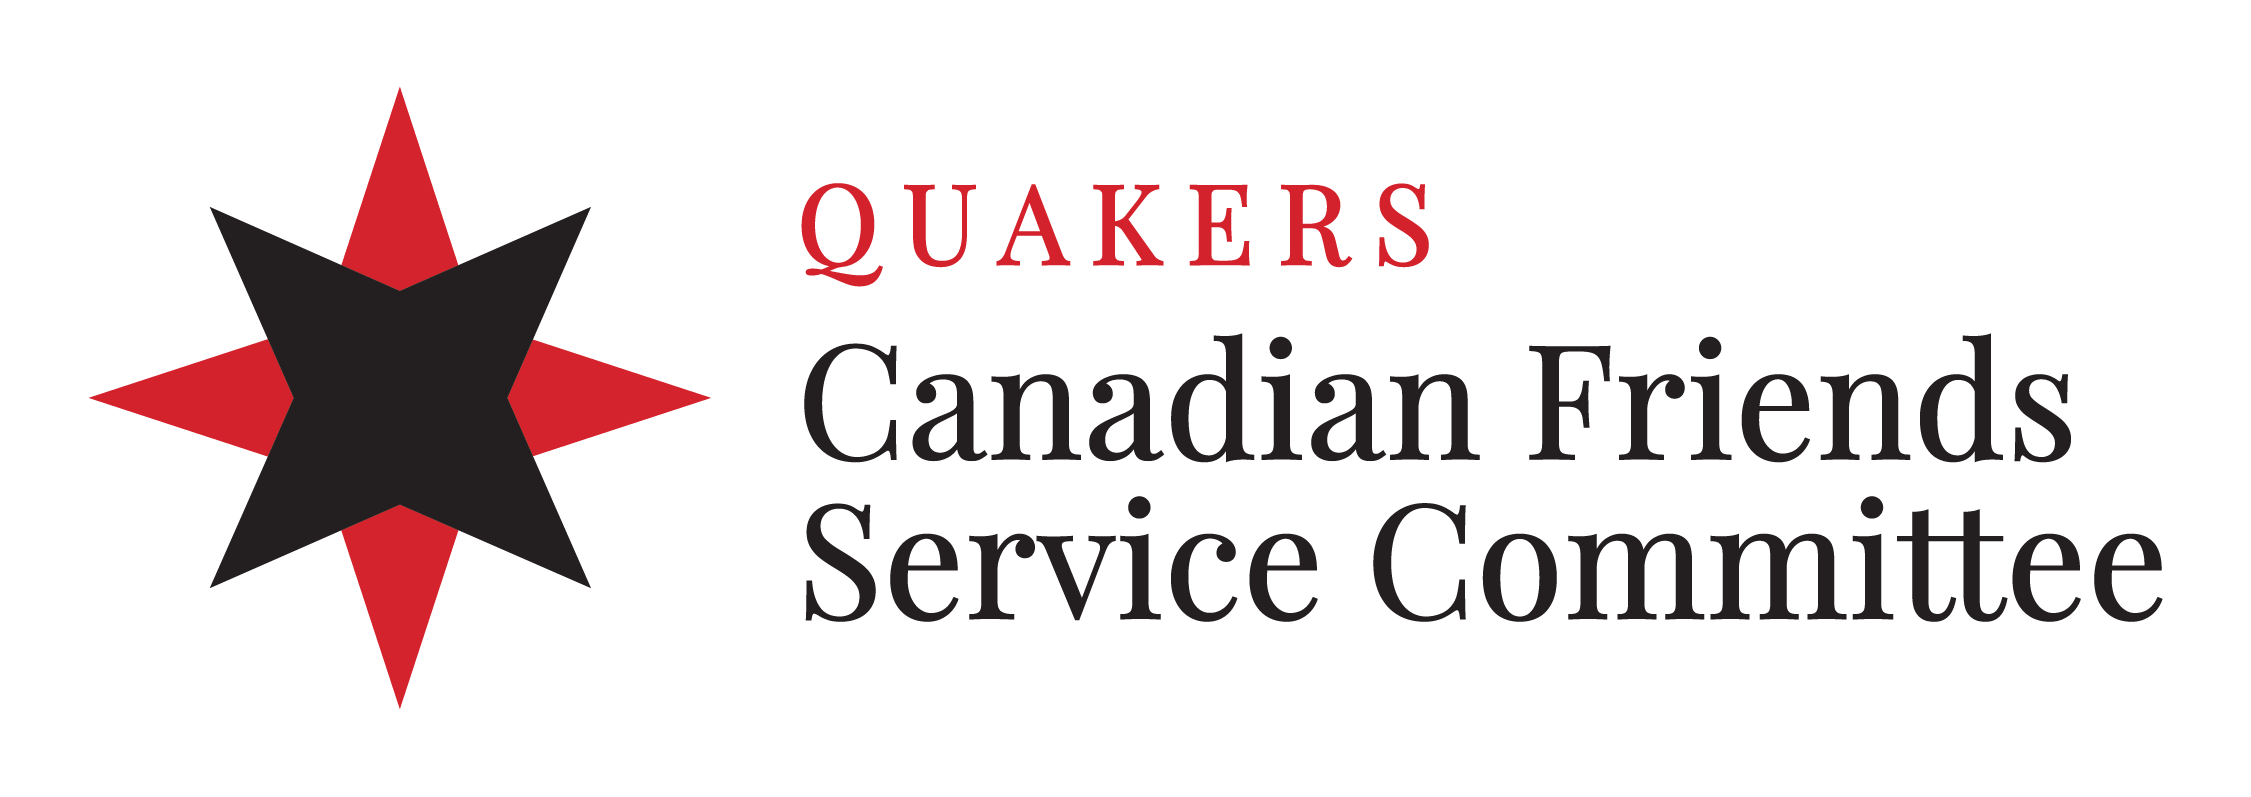 Canadian Friends Service Committee (Quakers) logo